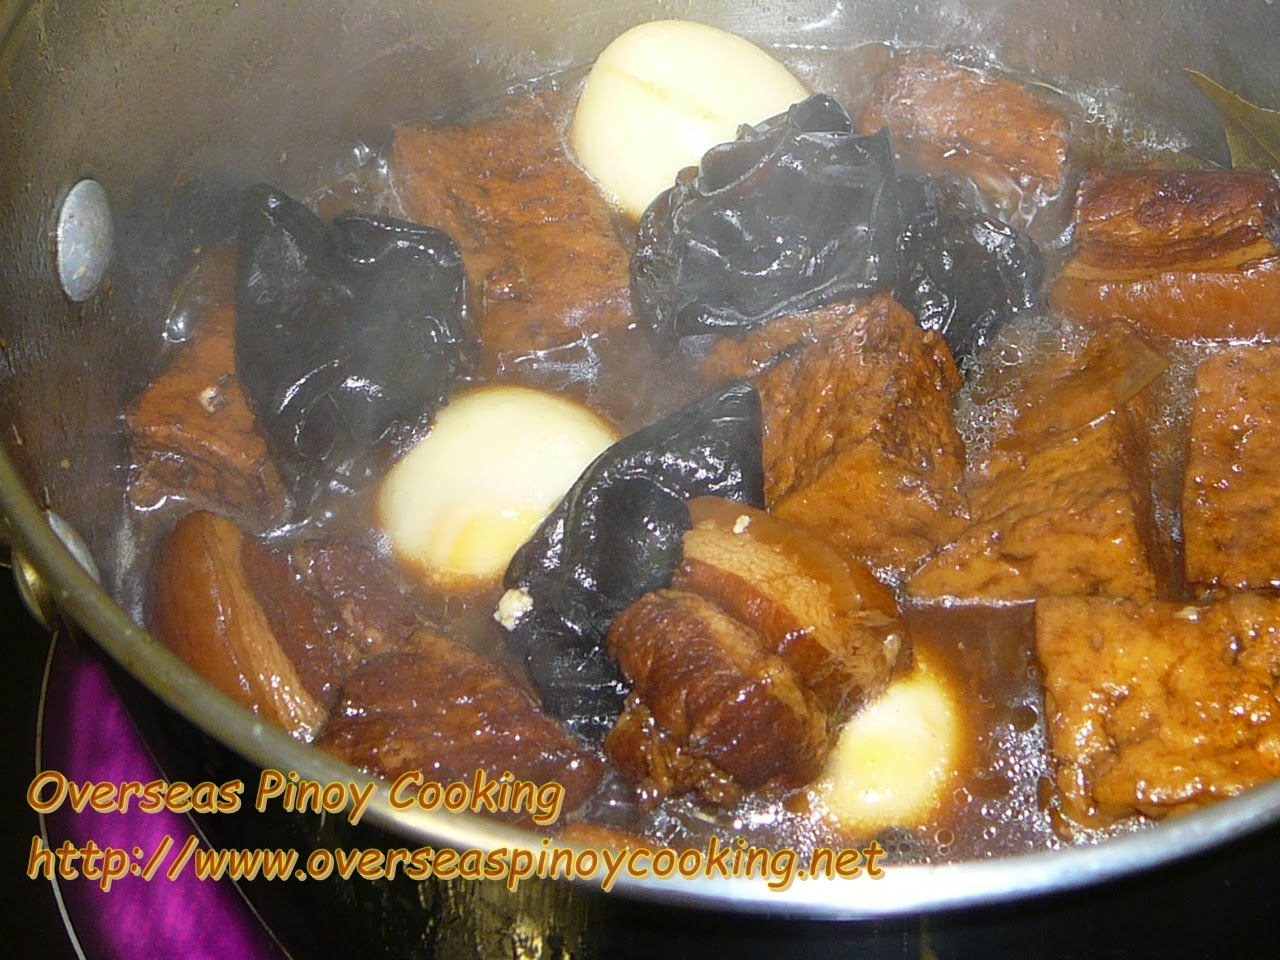 Braised Pork and Tofu with Black Fungus - Cooking Procedure